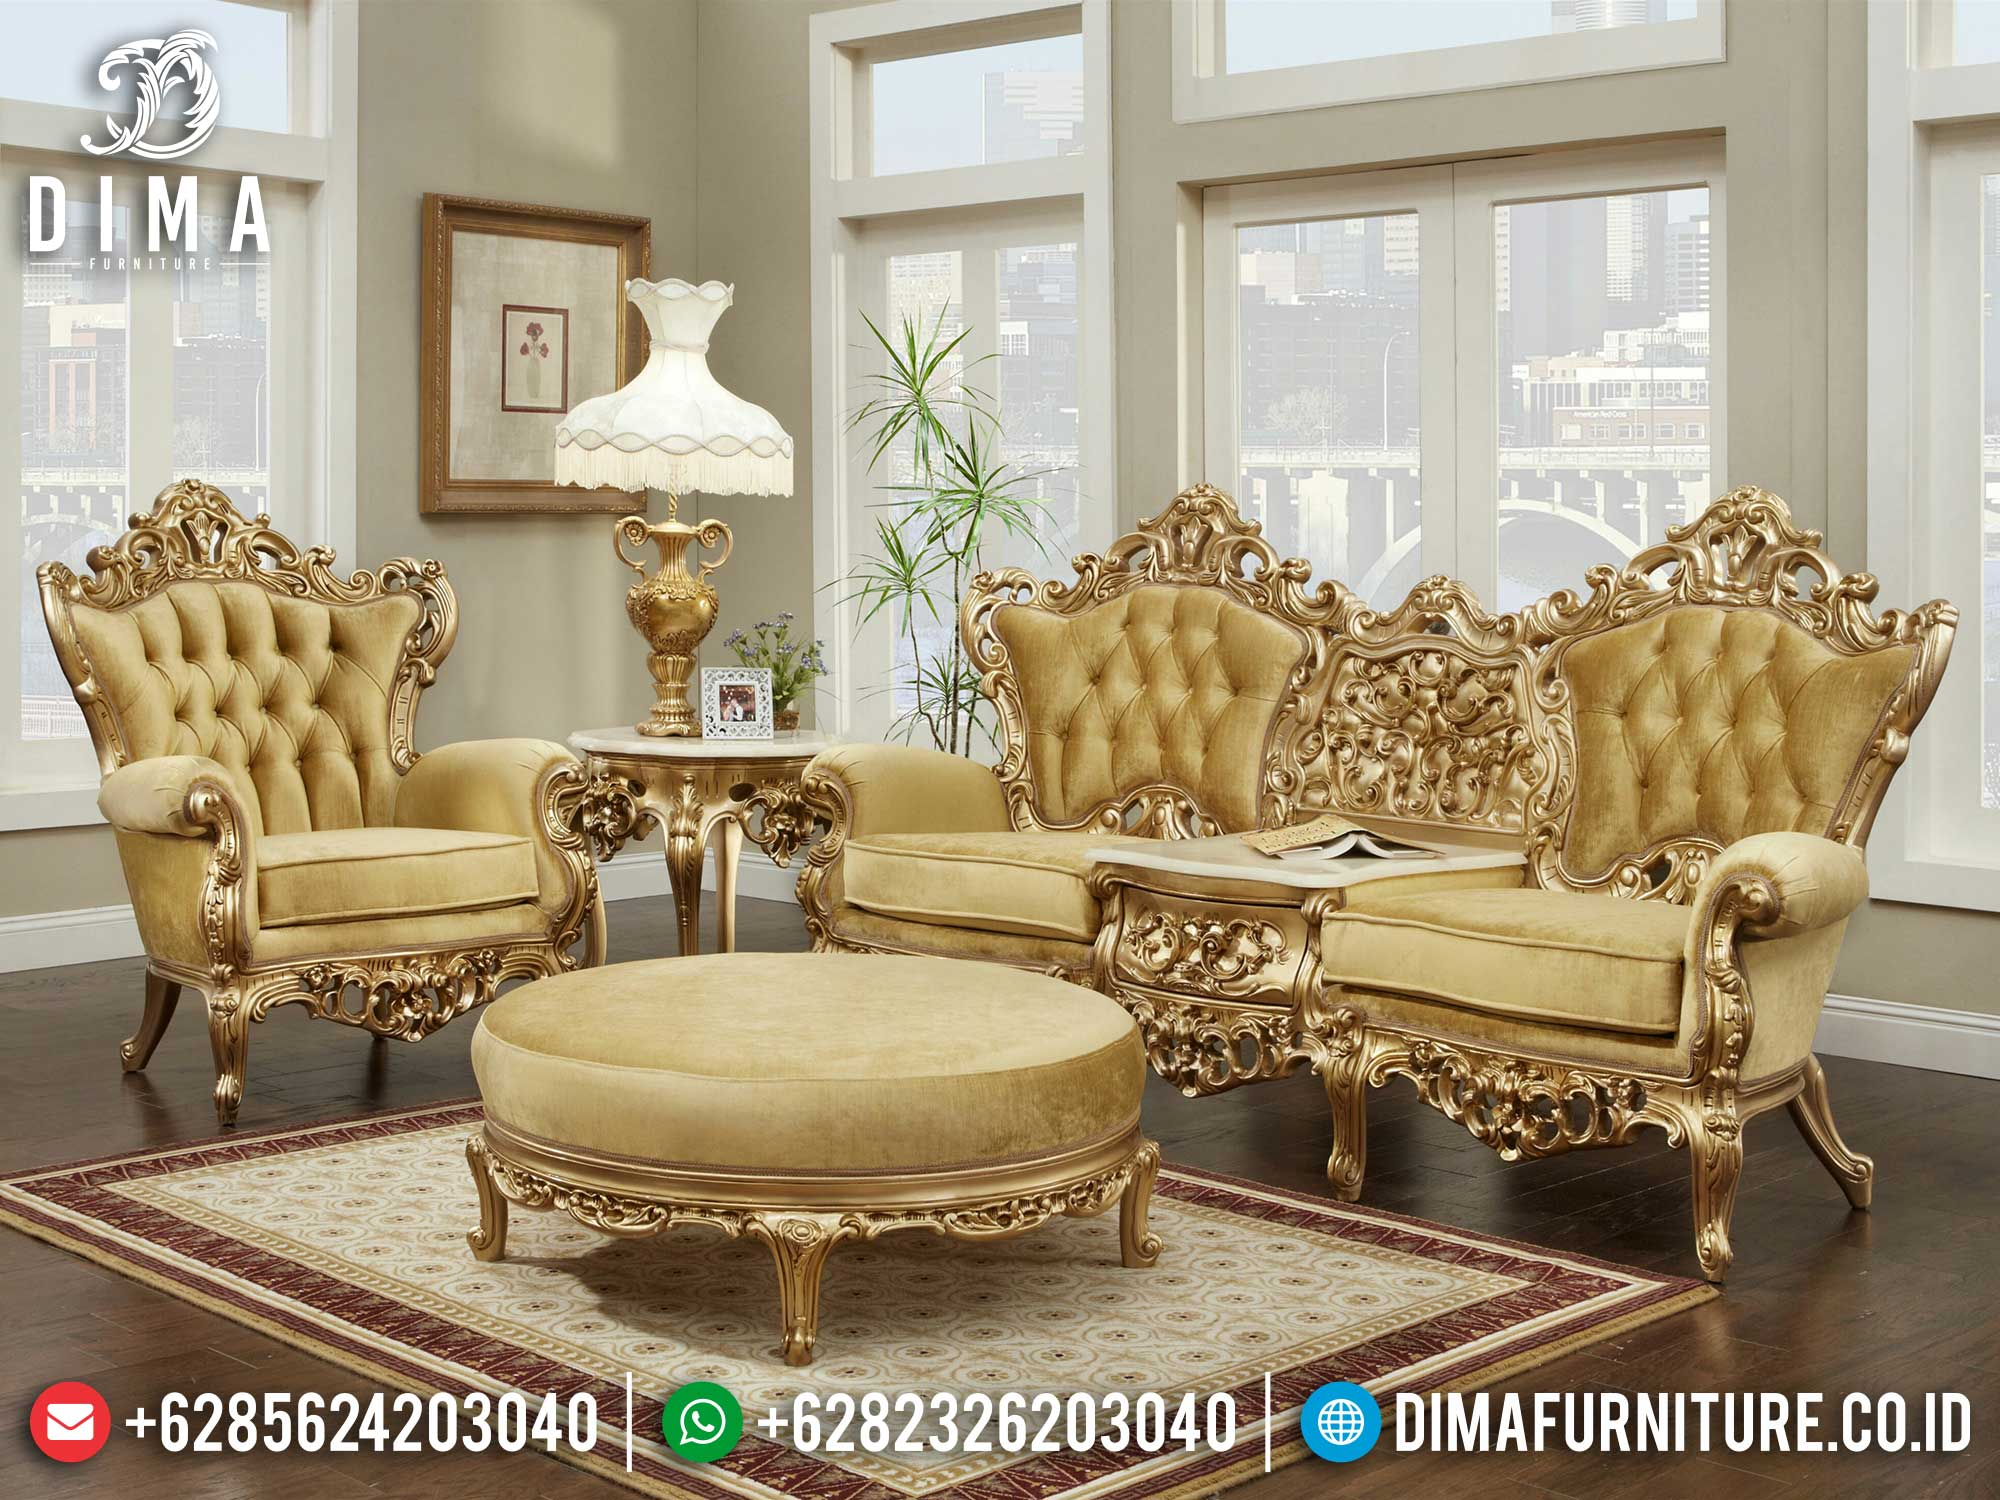 High Class Sofa Tamu Jepara Mewah Terbaru Golden Shine Color Luxury Mm-0908